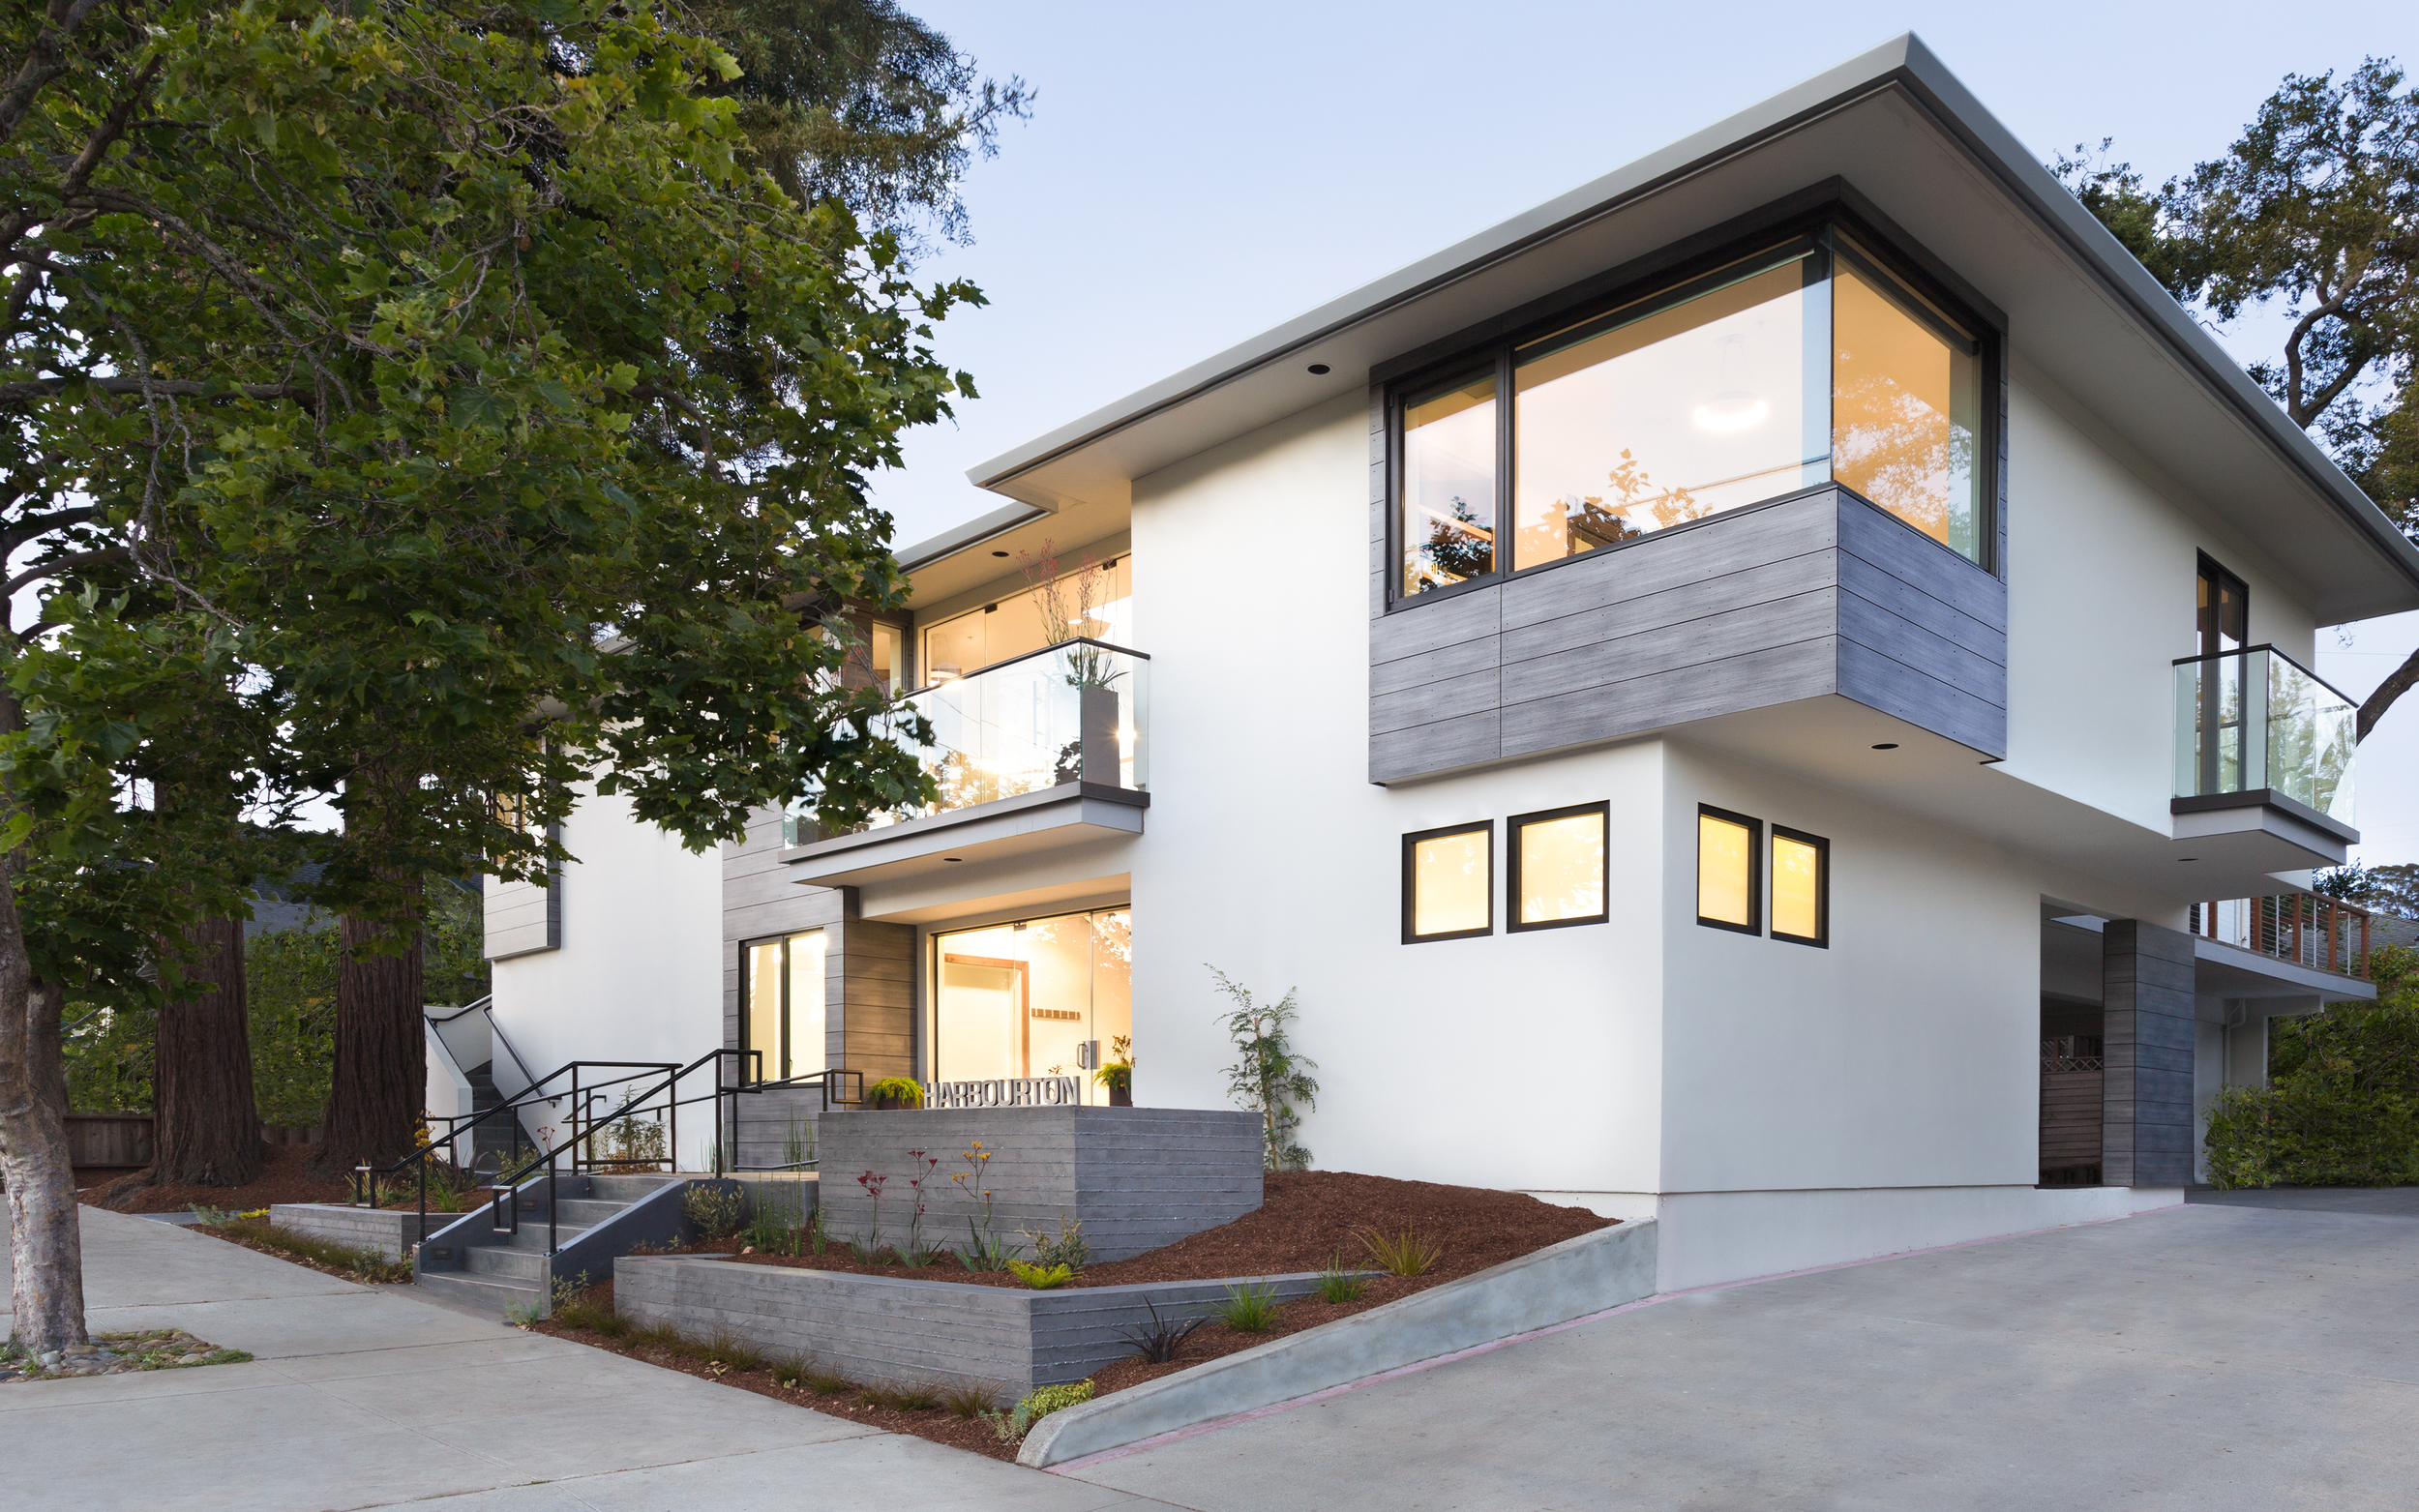 512 Corporate Office - Harbourton Enterprises Exterior Architecture - Capitola ,CA